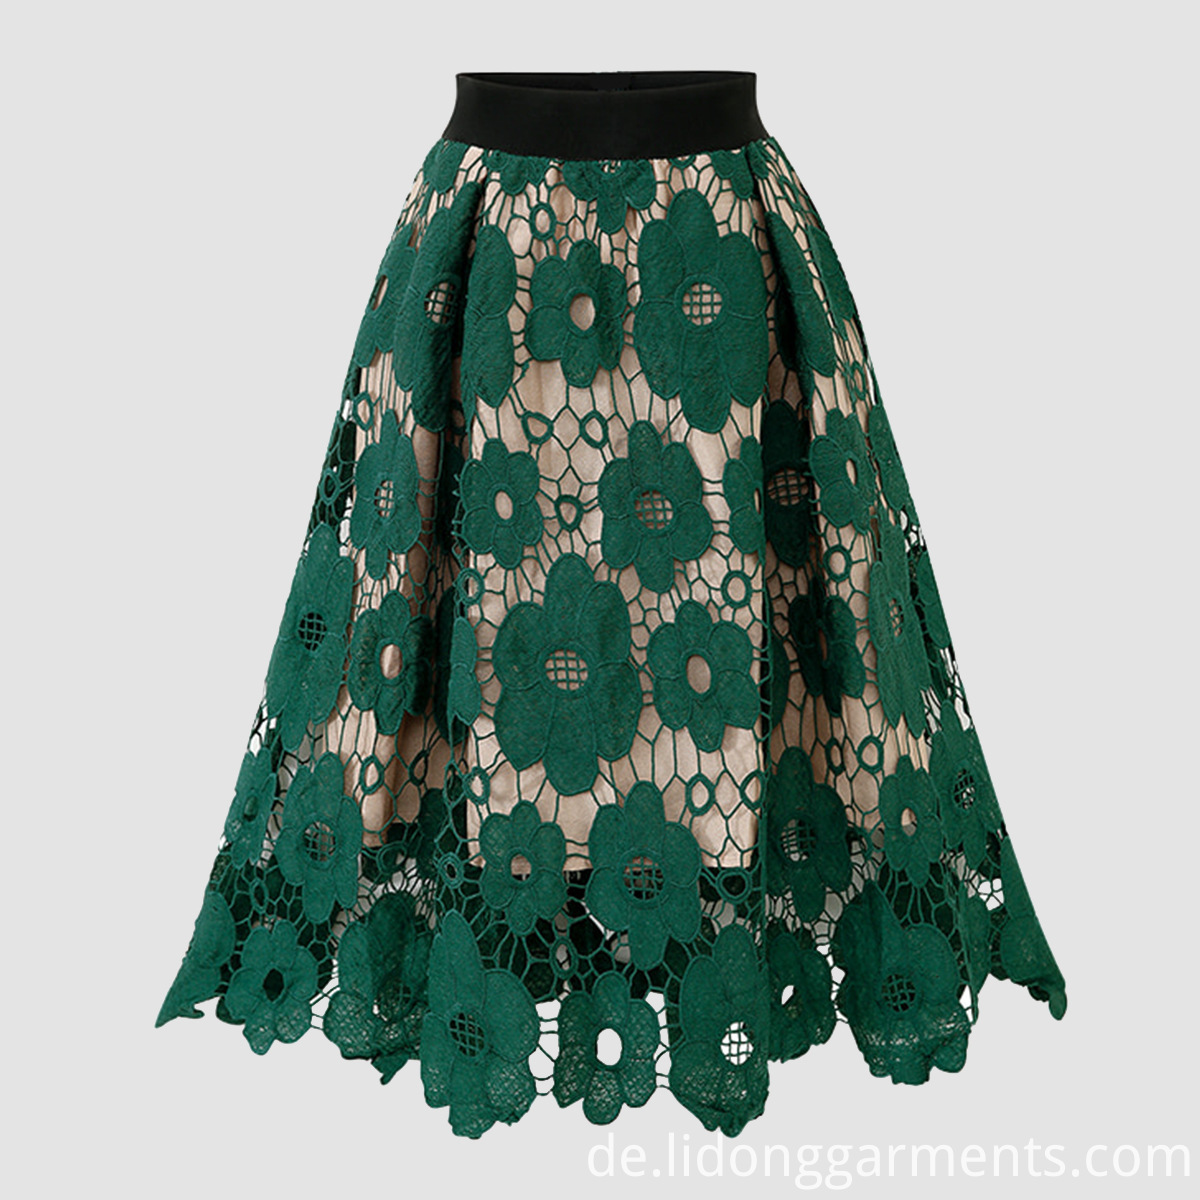 Ladies' Lace Skirt